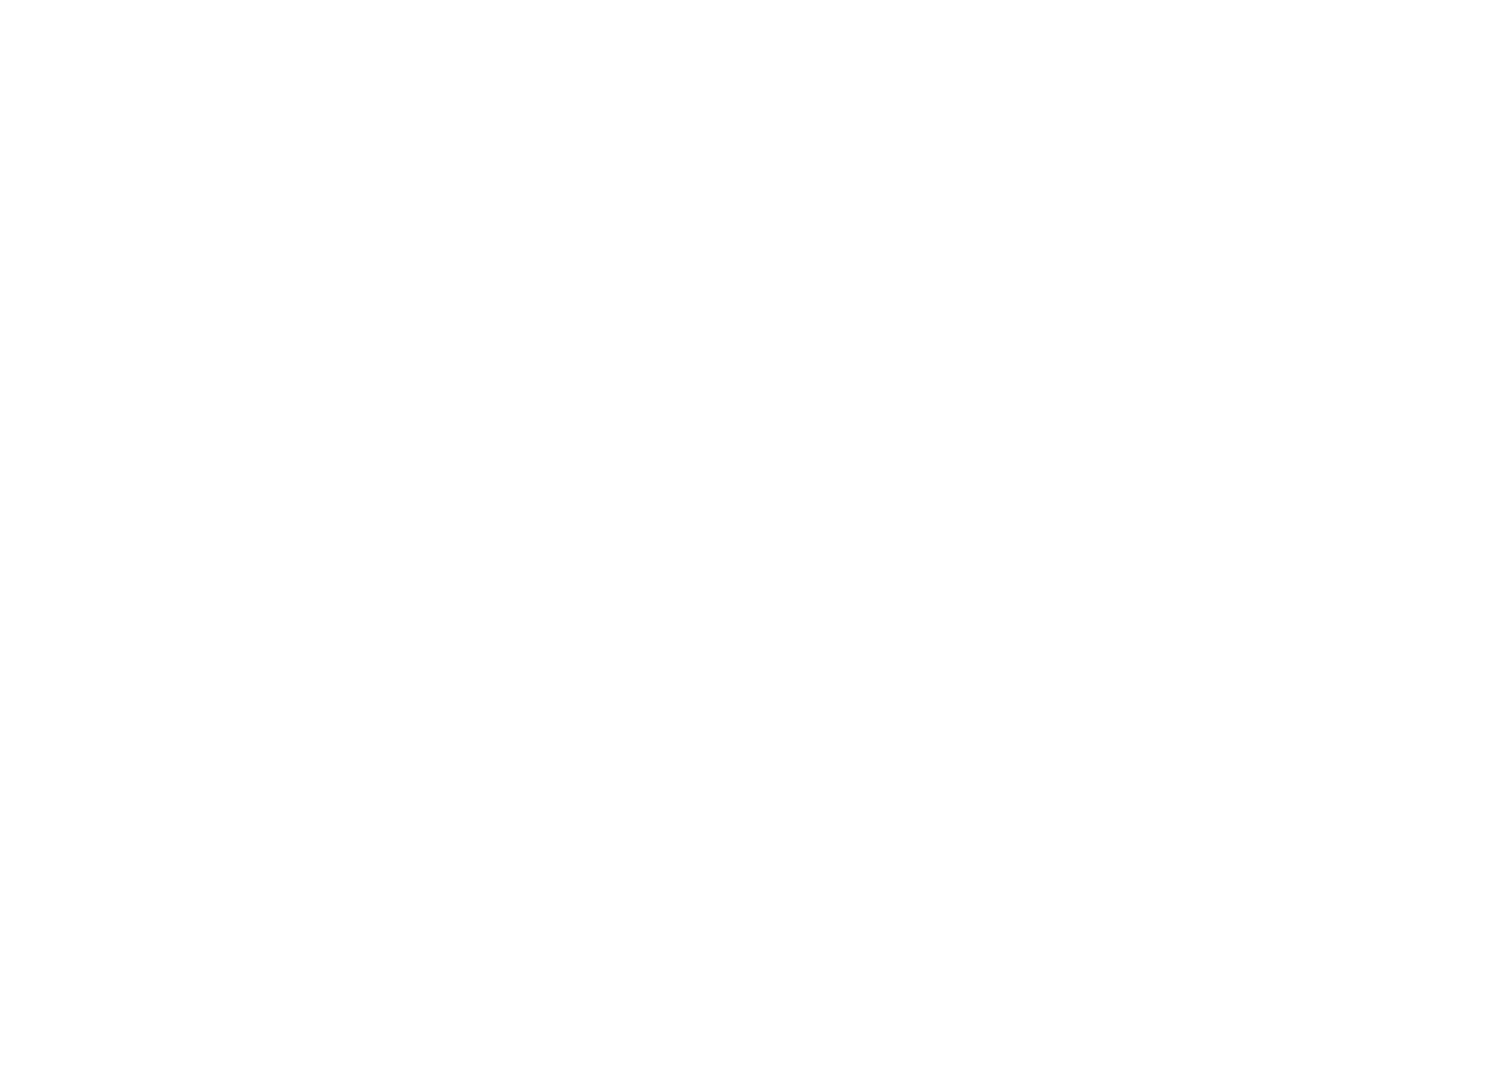 Sugar Cube Entertainment